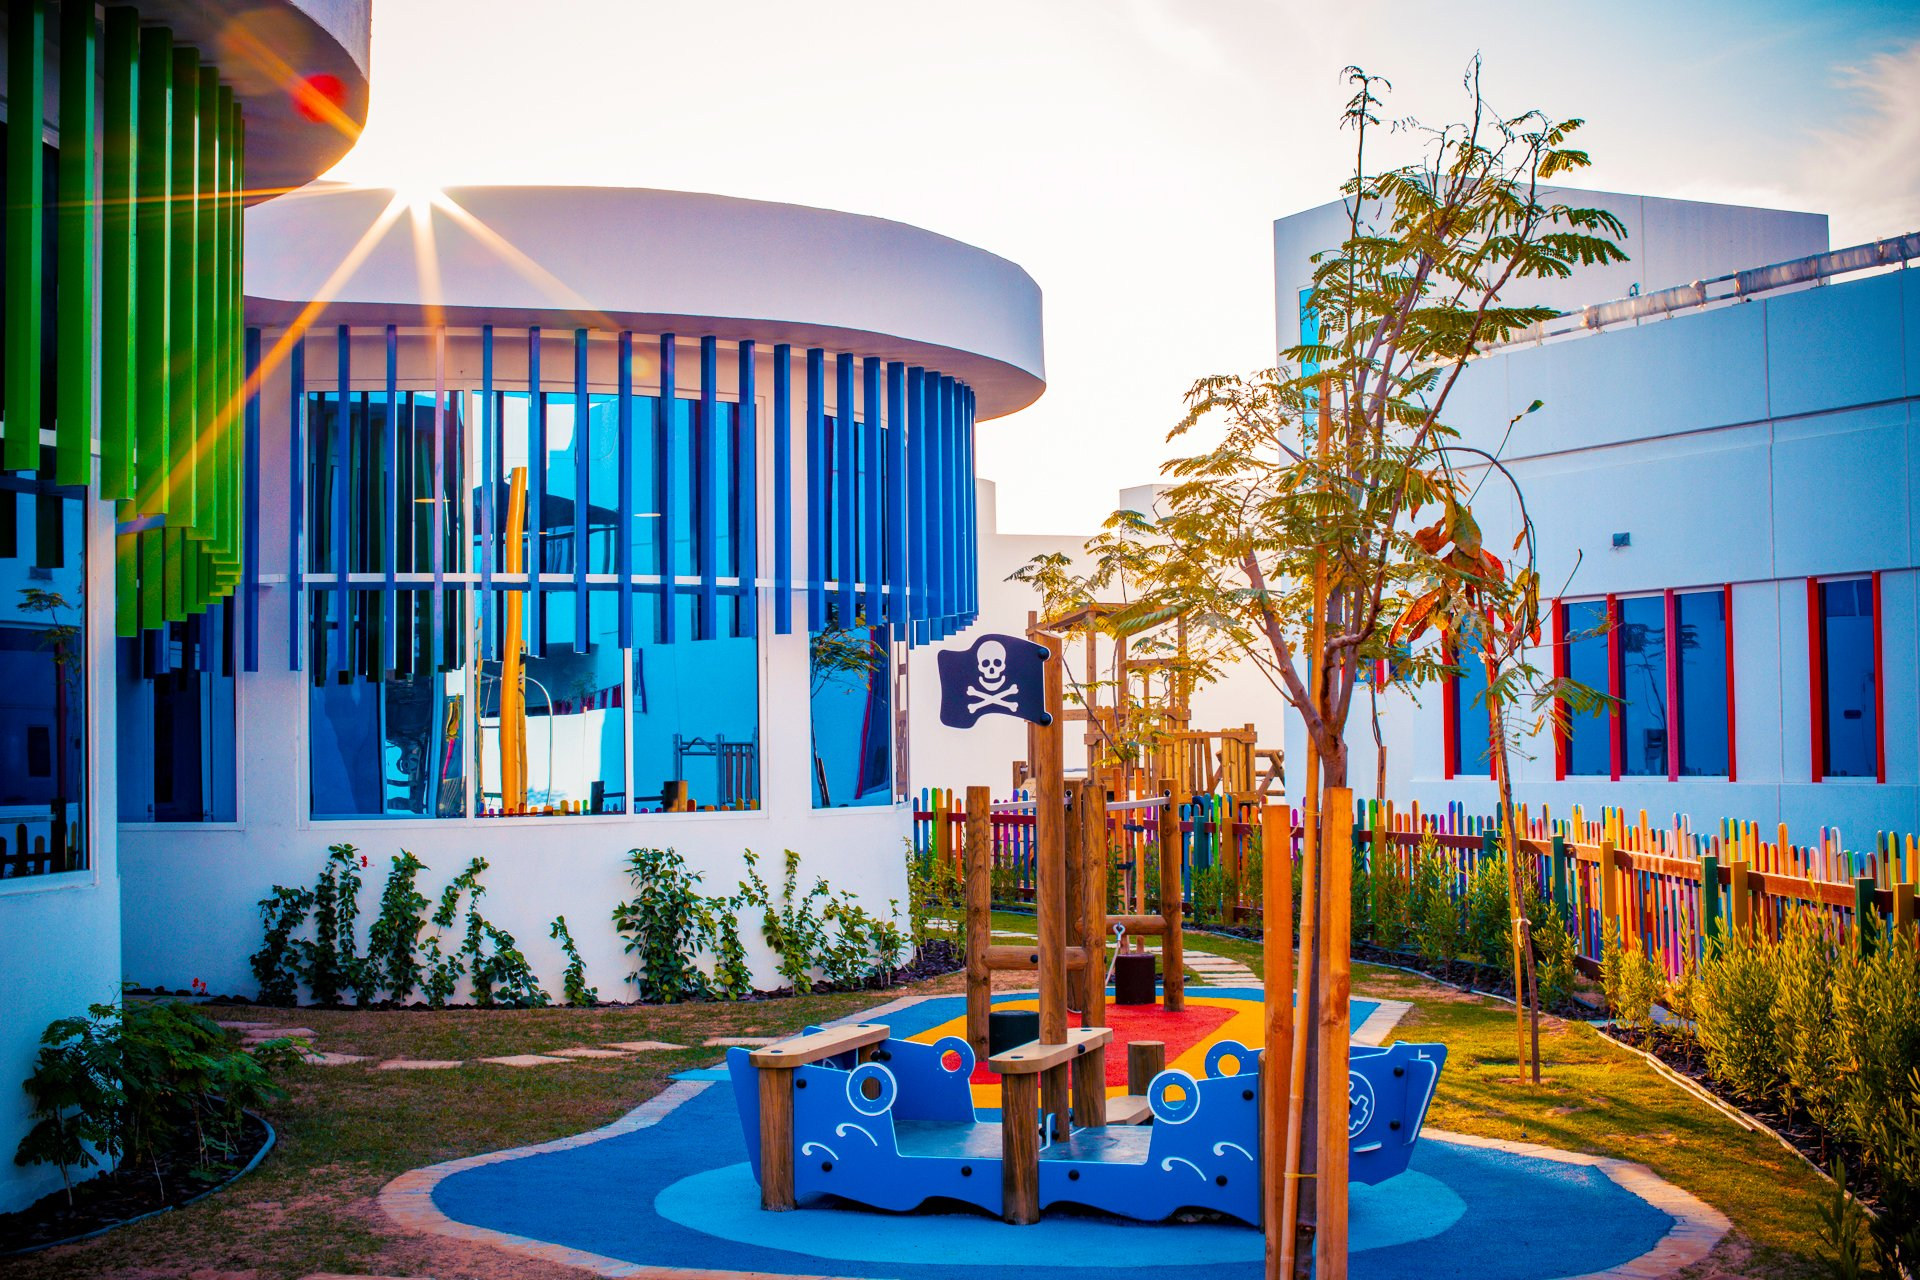 Image showing one of the many interactive play areas for younger children at Dubai Heights Academy in Dubai